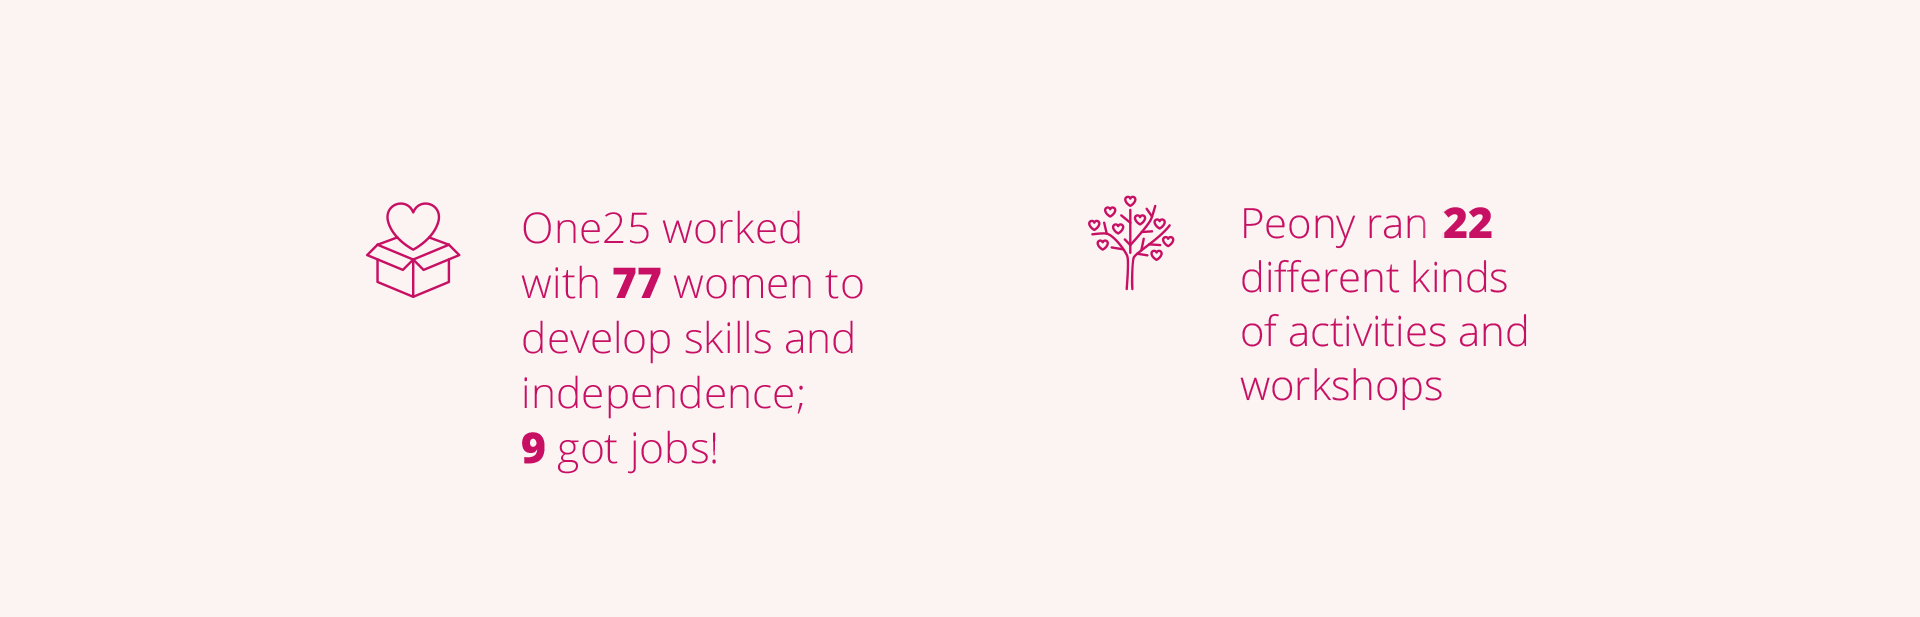 One25 worked with 77 women to develop skills and independence; 9 got jobs! Peony ran 22 different kinds of activities and workshops.